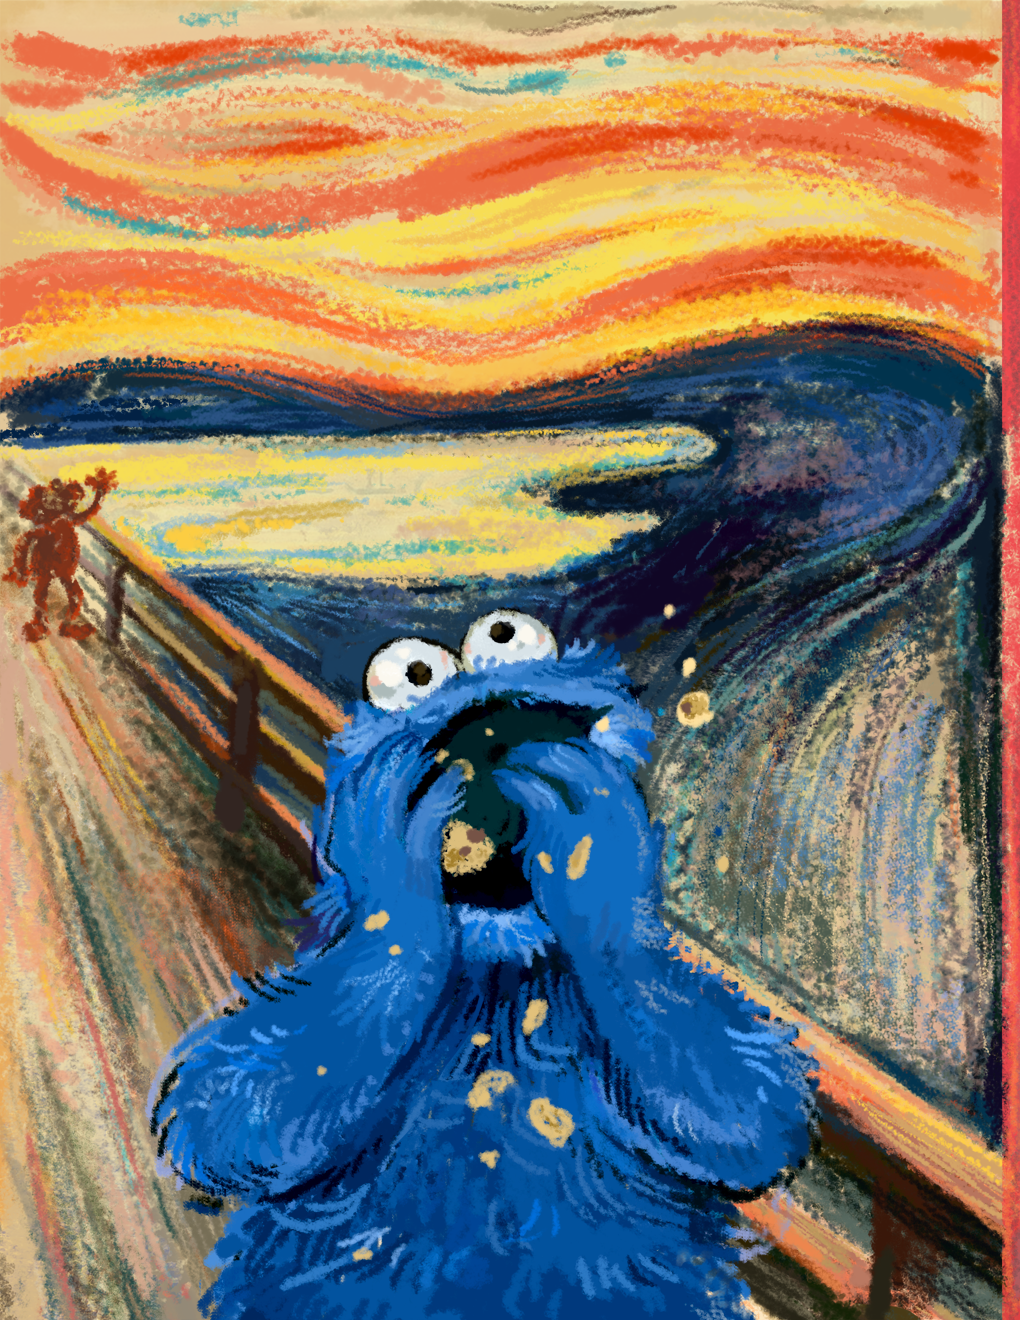 Cookiemonster à La Edvard Munch In 2019 Funny Art Edvard